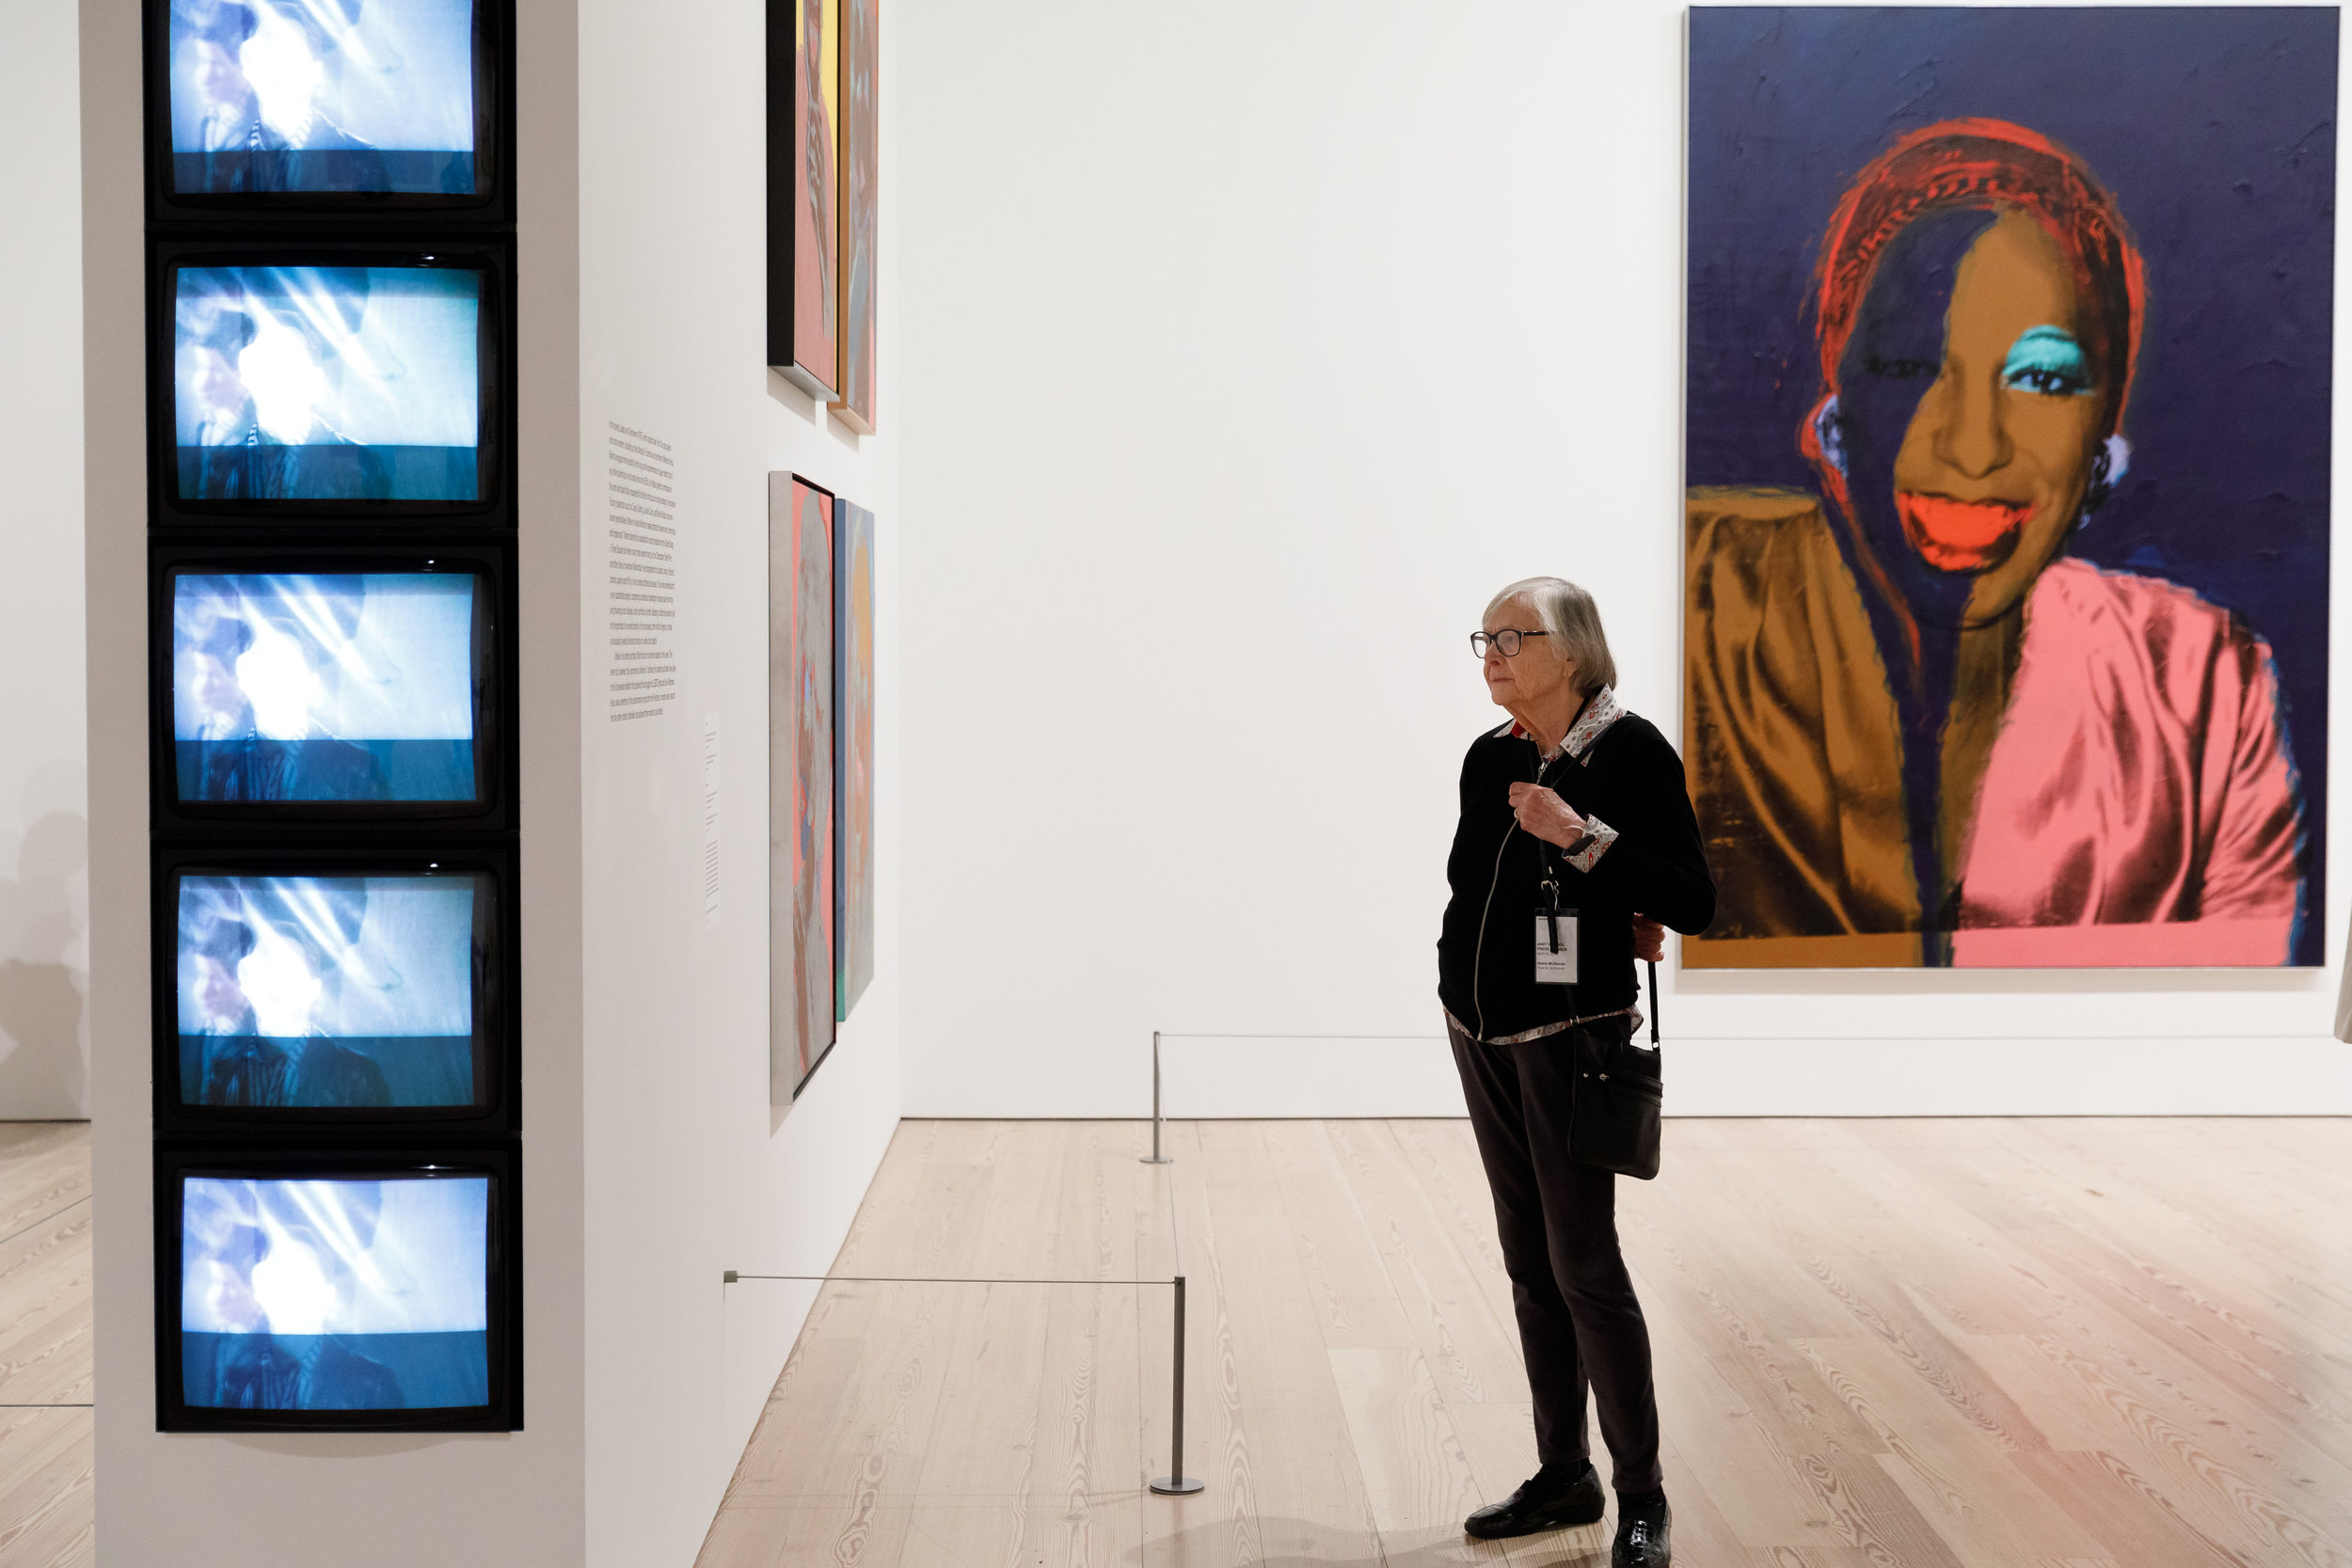 """On the right: Portrait of Wilhelmina Ross, part of Warhol's """"Ladies and Gentlemen"""" series. Image courtesy of ©MatthewCarasella.com 2015/ All Rights Reserved"""